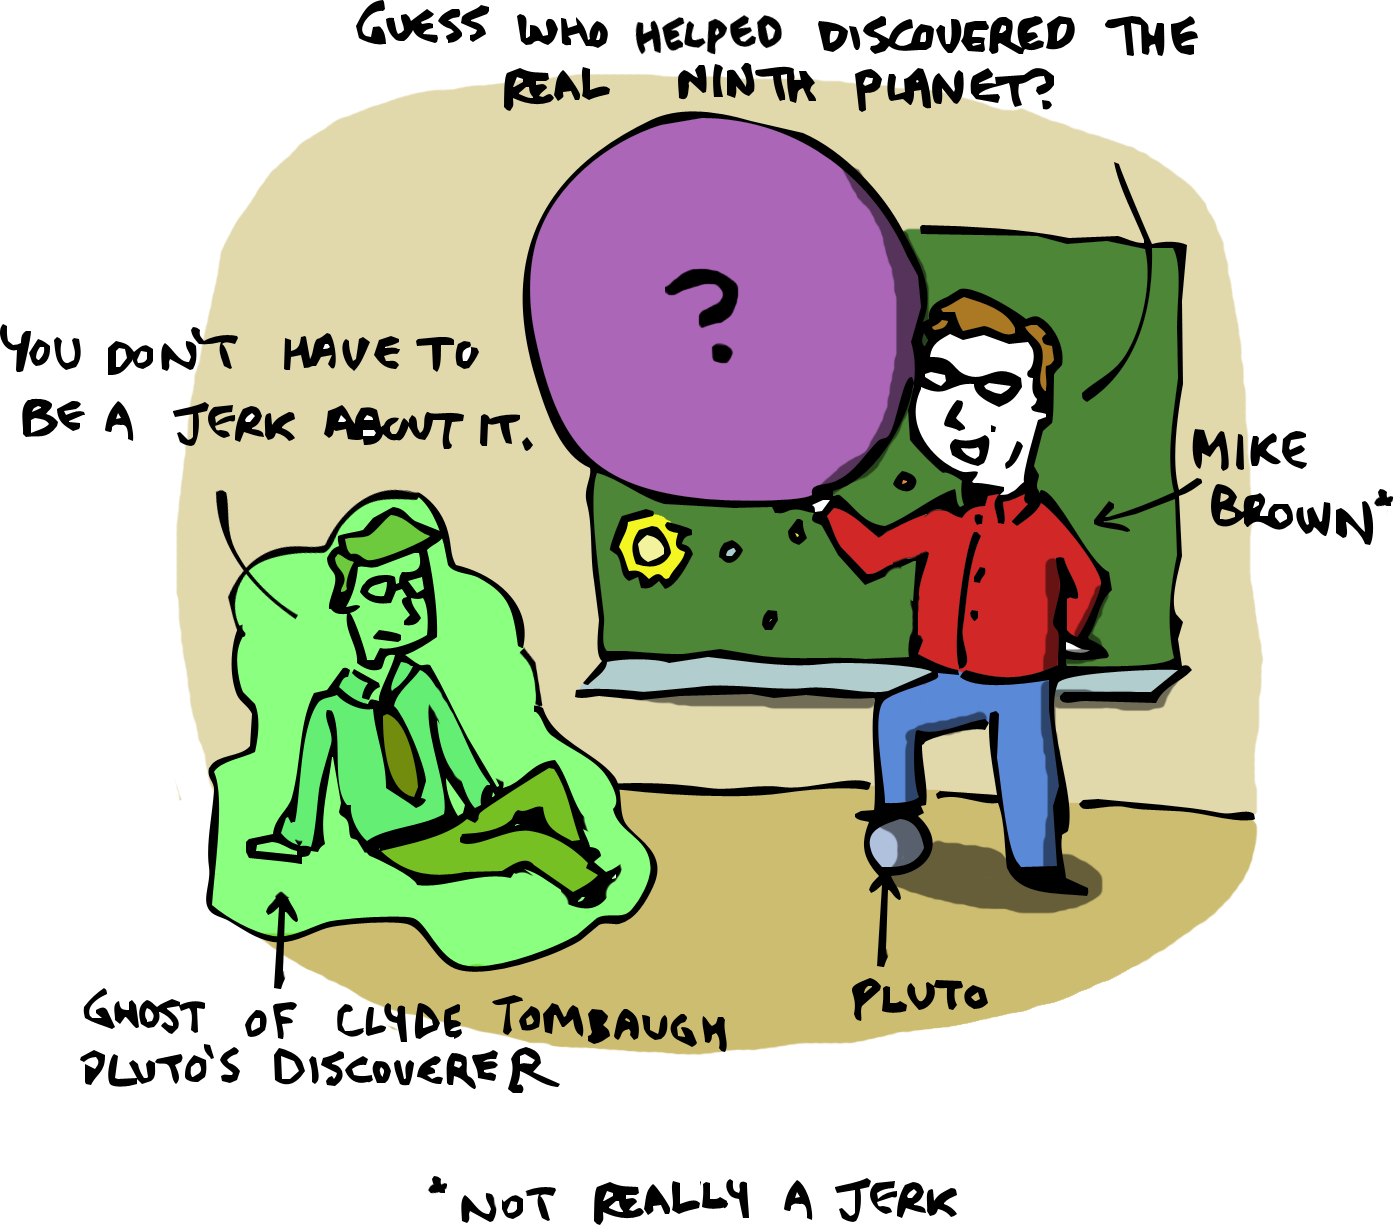 Sketchy Science Pluto 2 0 The New Ninth Planet